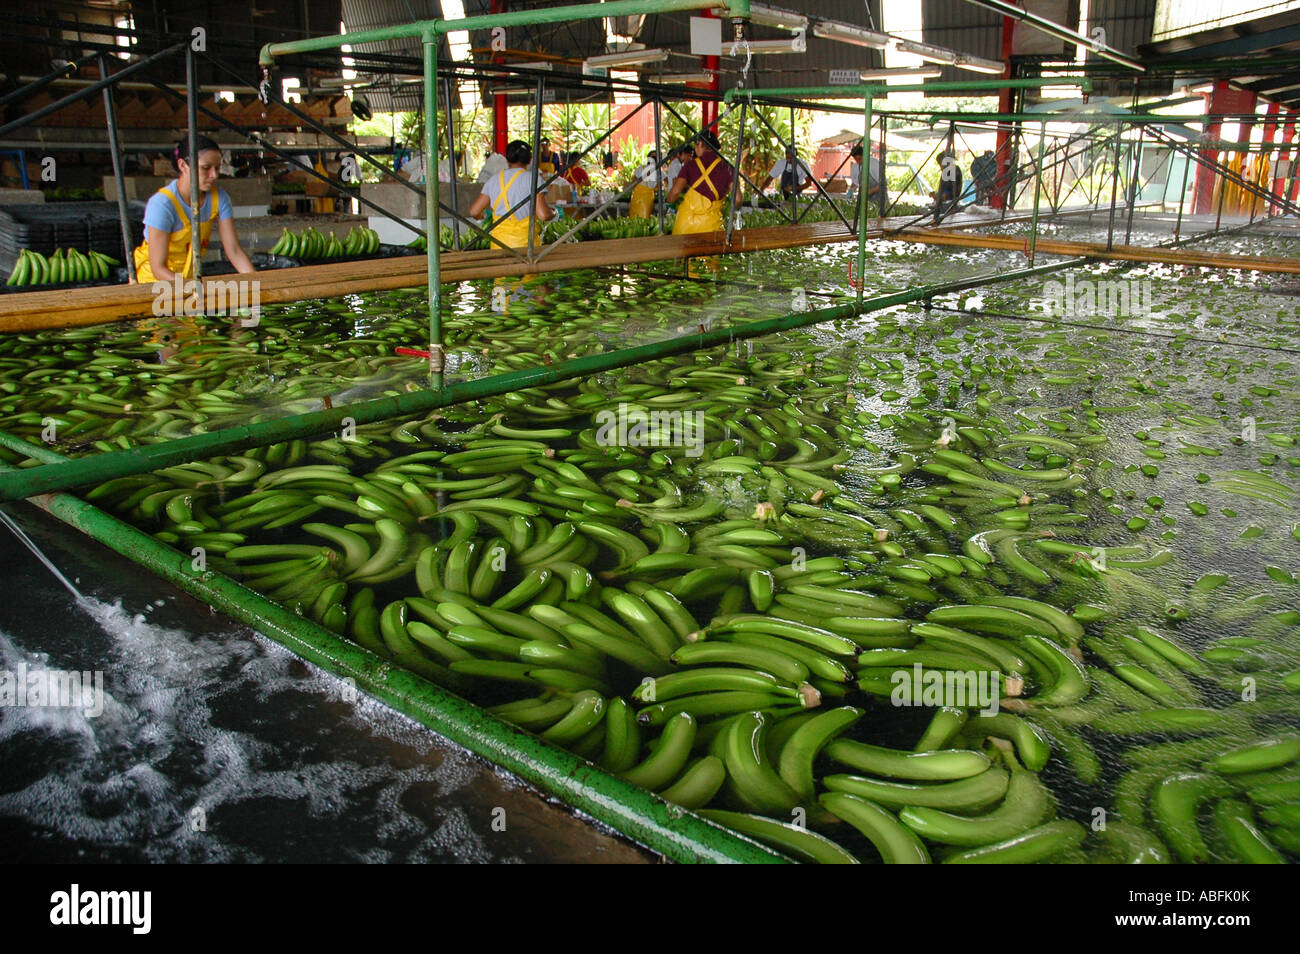 Workers process freshly harvested bananas at a Dole banana plantation northeastern Costa Rica. - Stock Image